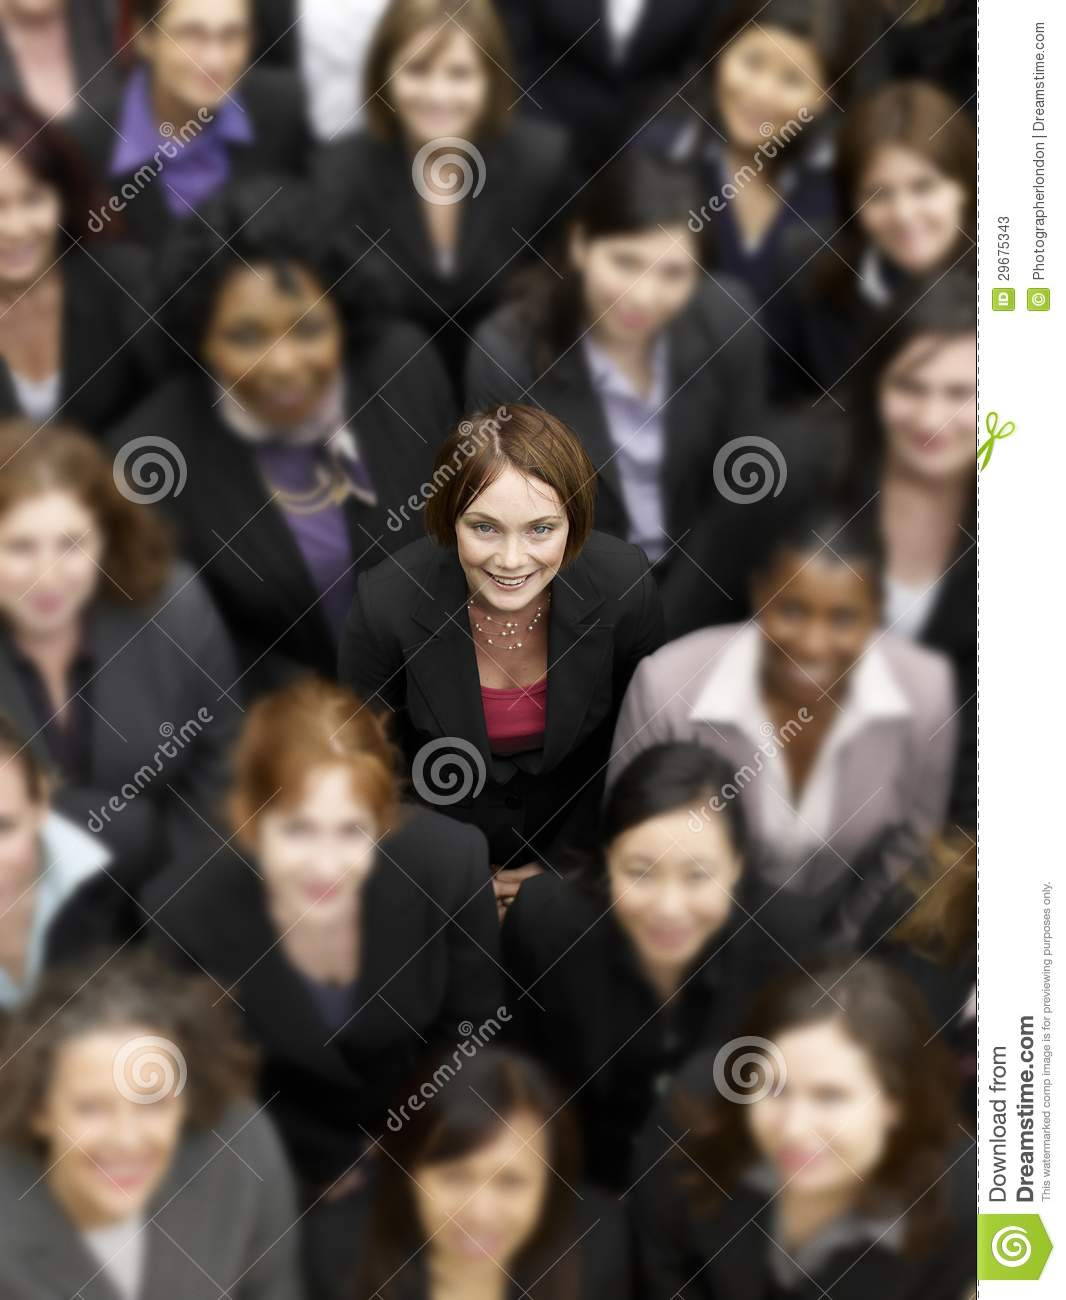 High angle view of a businesswoman standing amidst multiethnic businesspeople